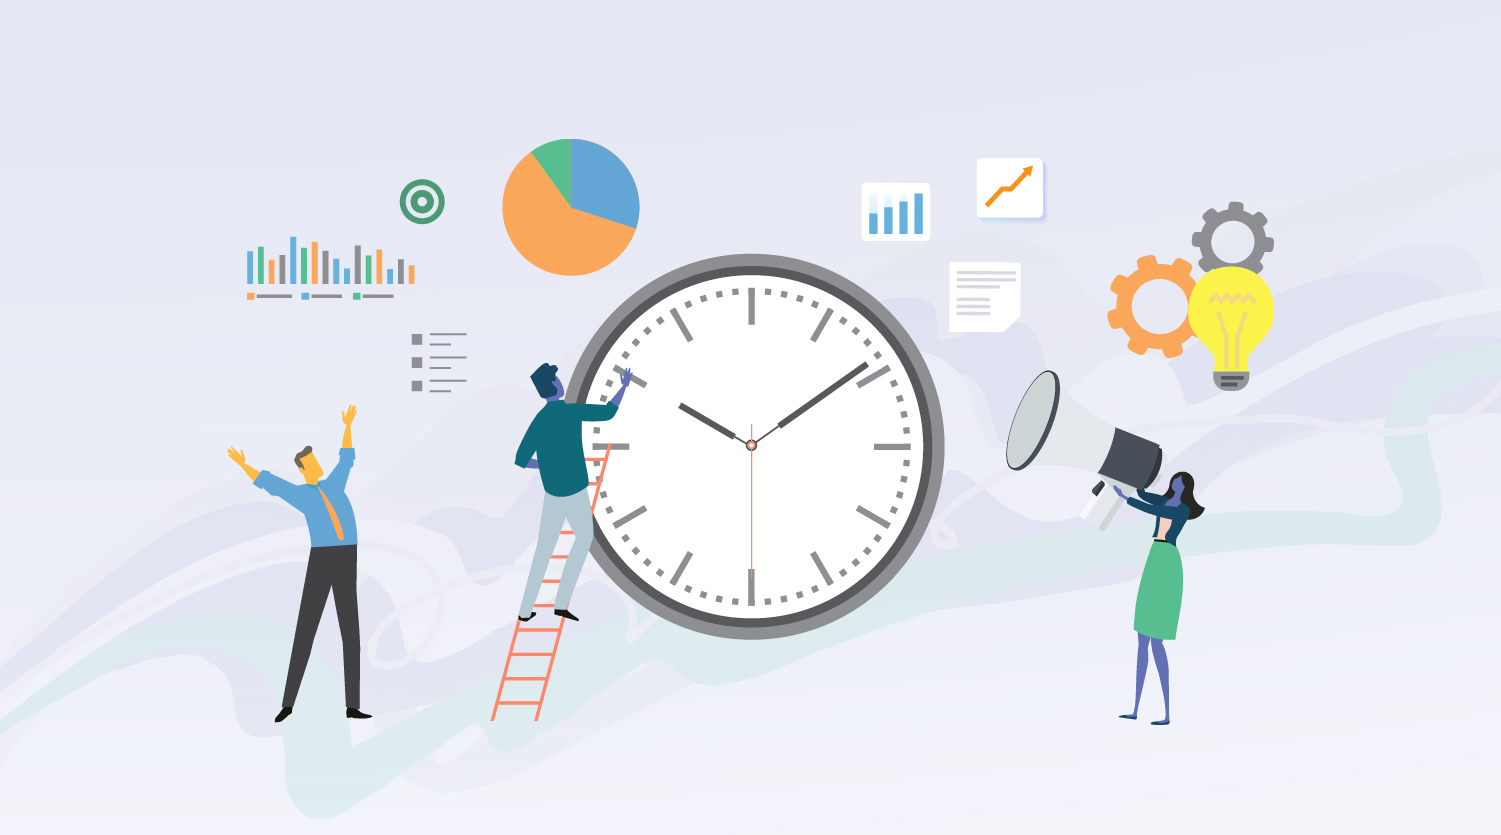 Should scrum teams track their time?